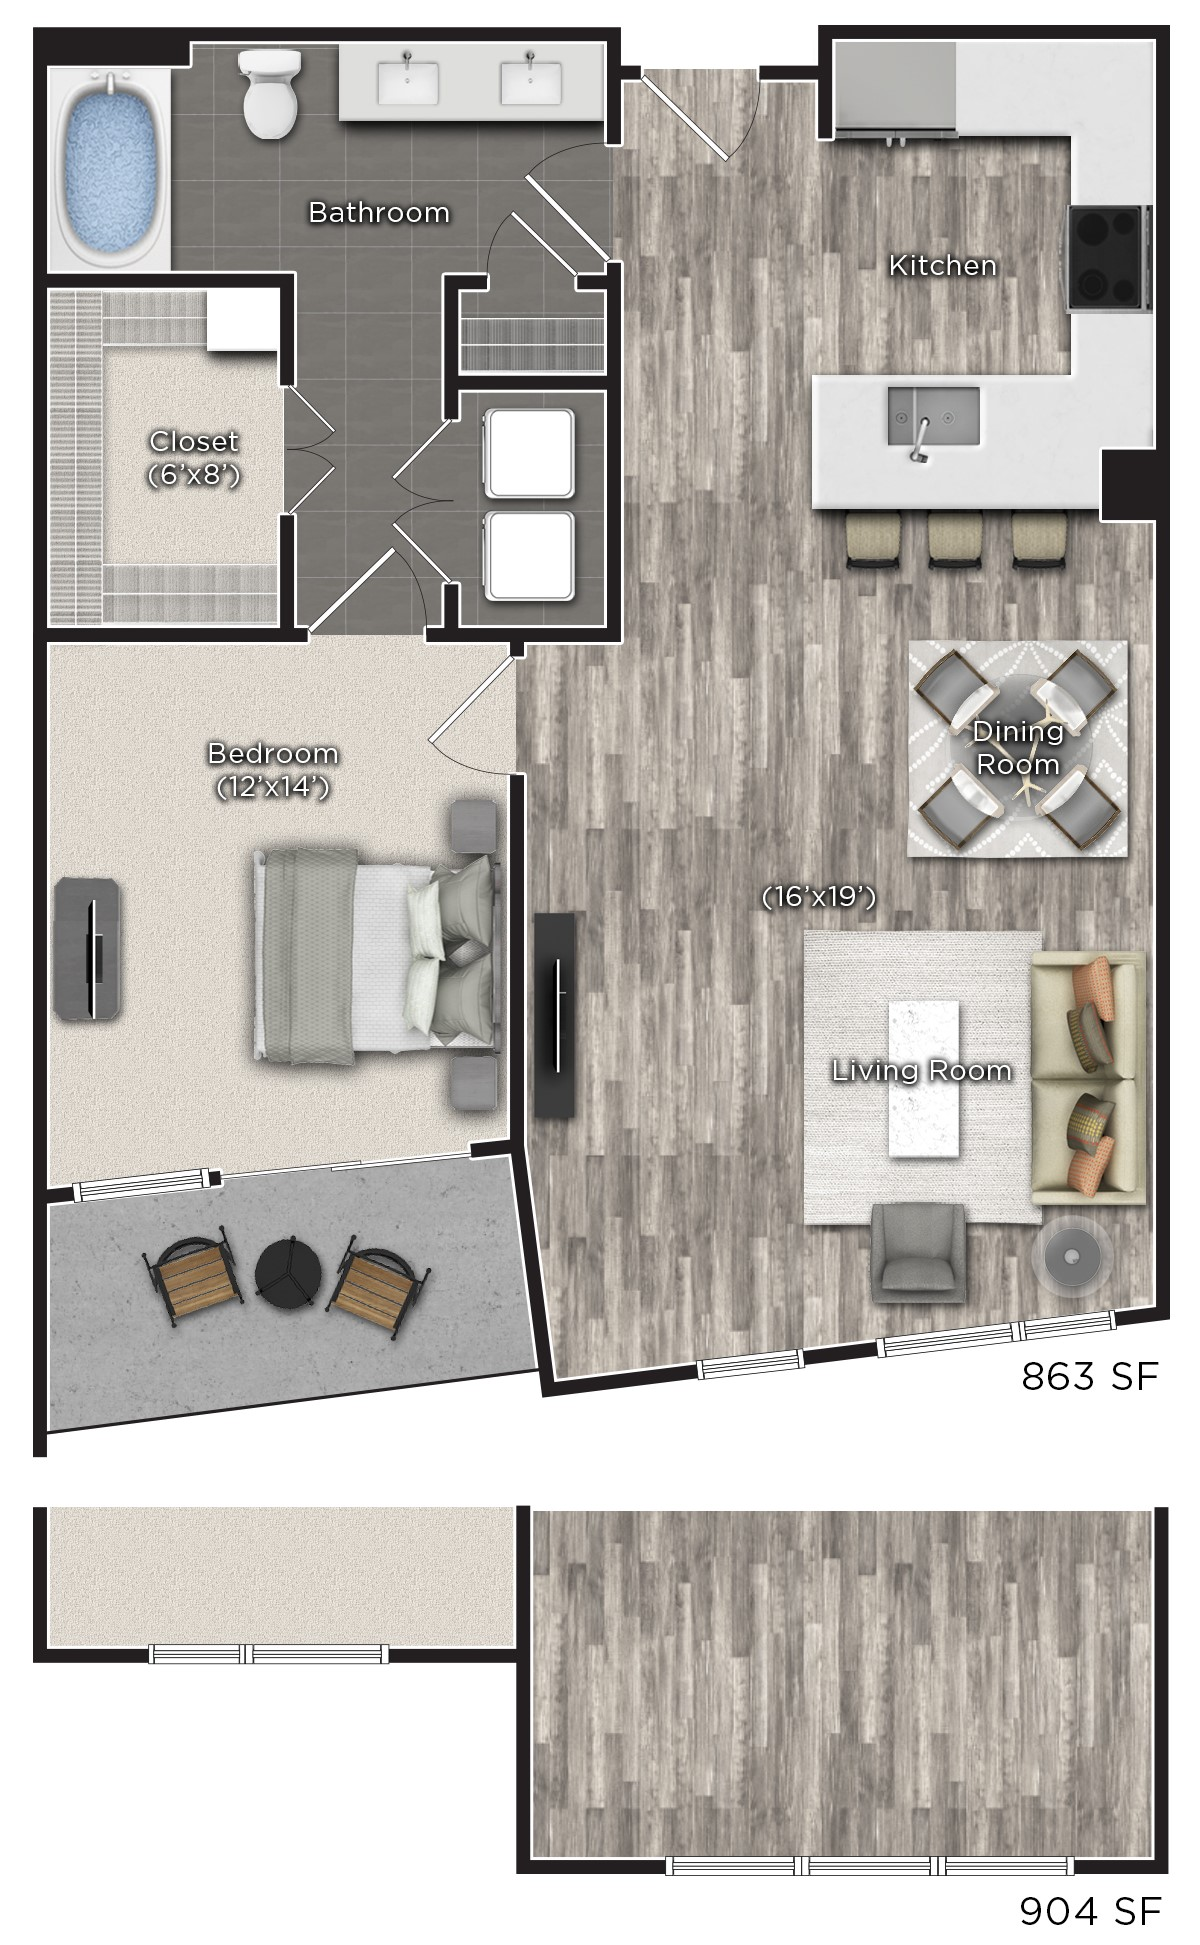 Tens on West - Floorplan - G